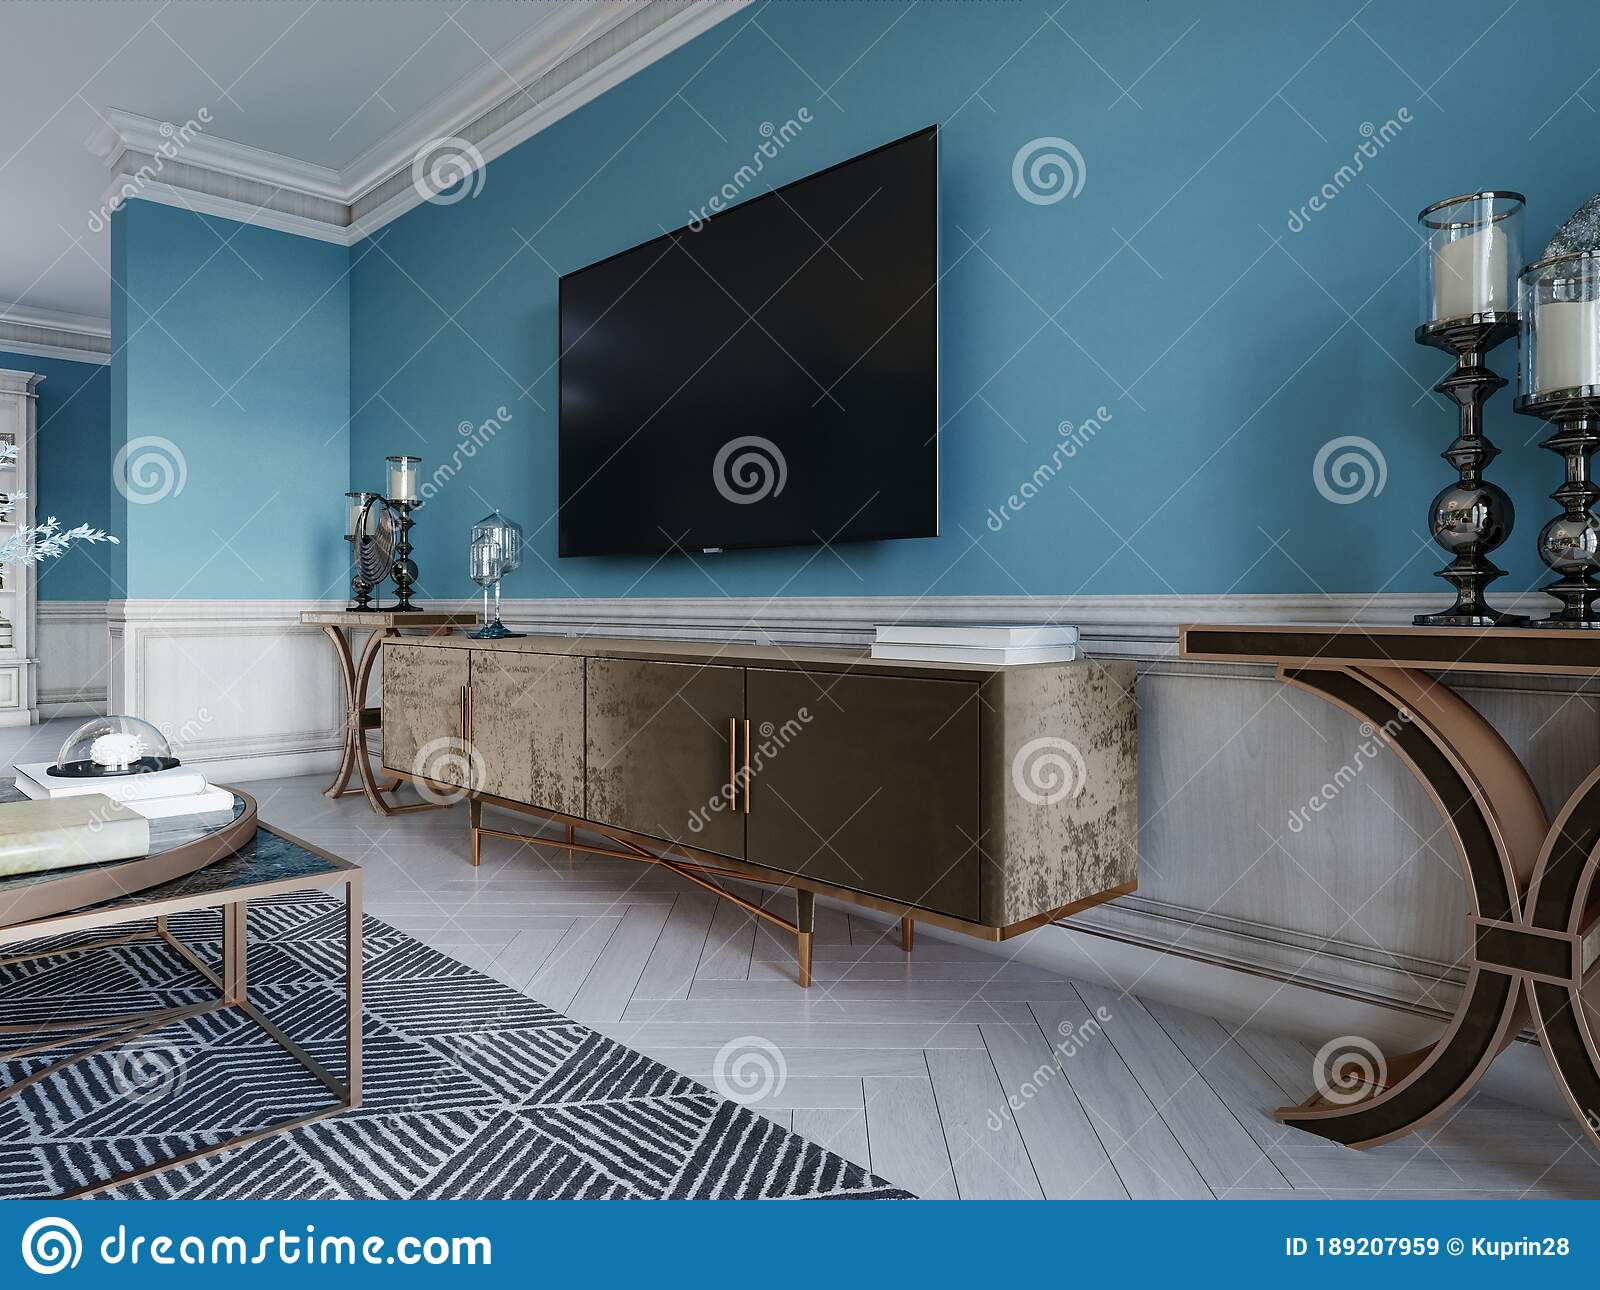 Tv Unit Tv Set In A Modern Living Room In A Classic Style With Blue Walls Black Tv Cabinet Console Table With Interior Decor Stock Illustration Illustration Of Flooring Apartment 189207959